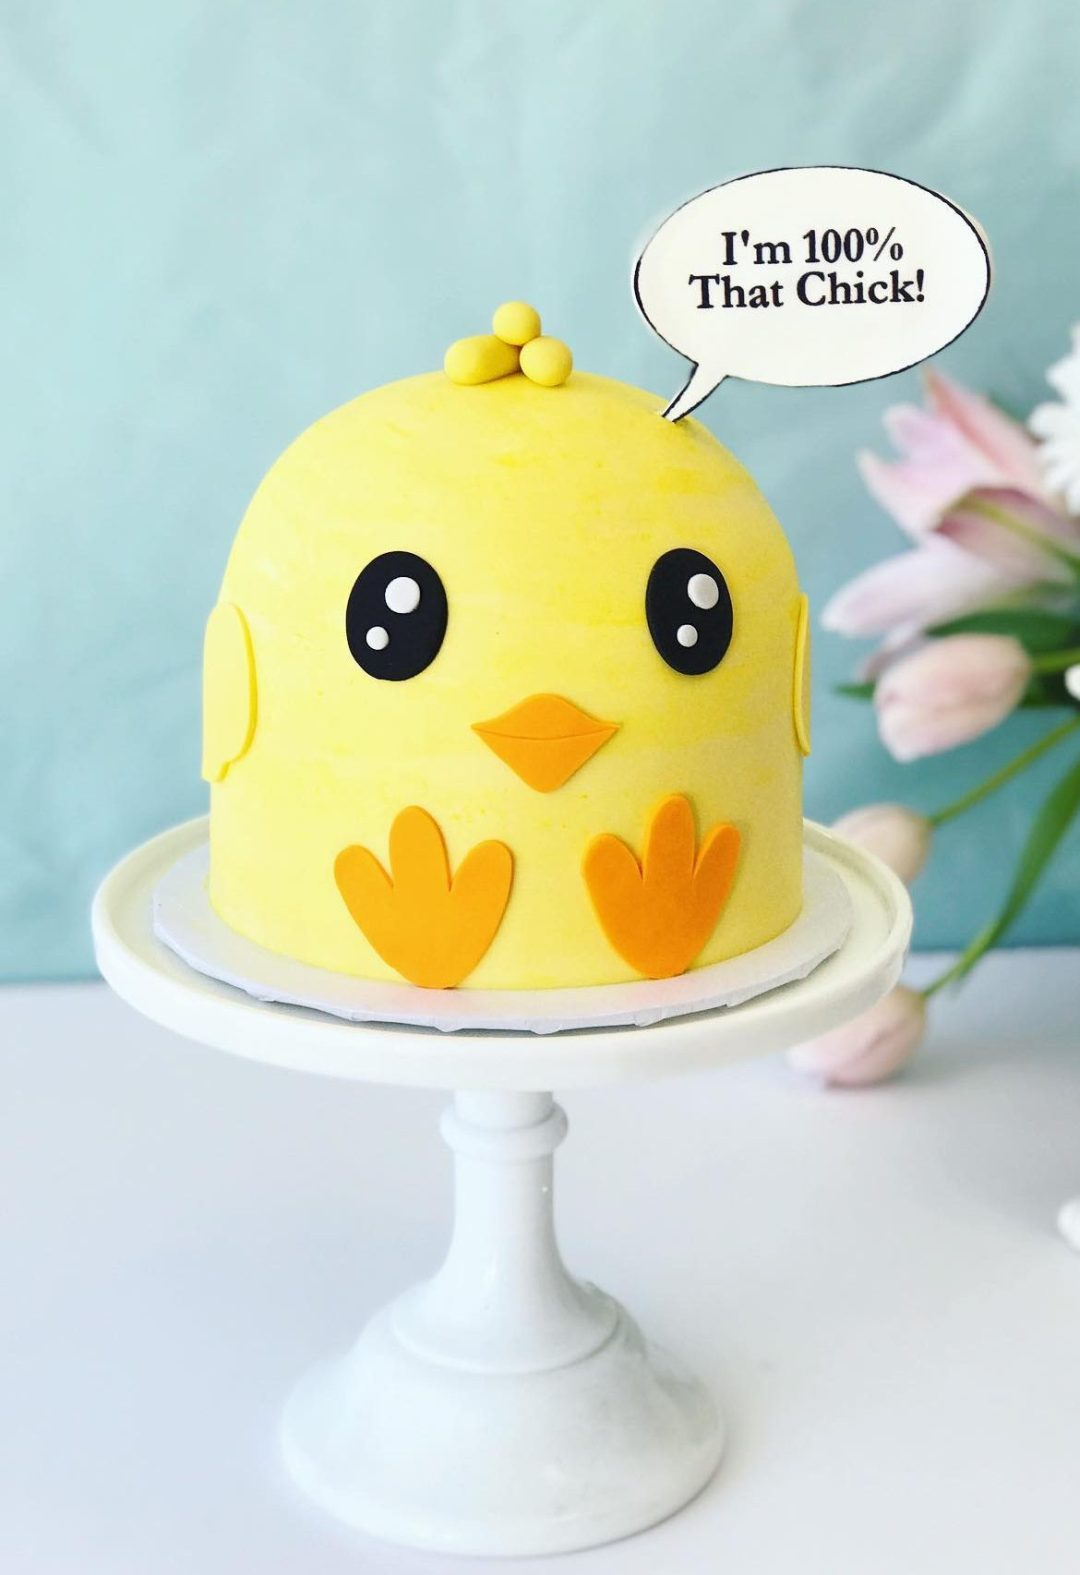 Cute Easter Chick Cake